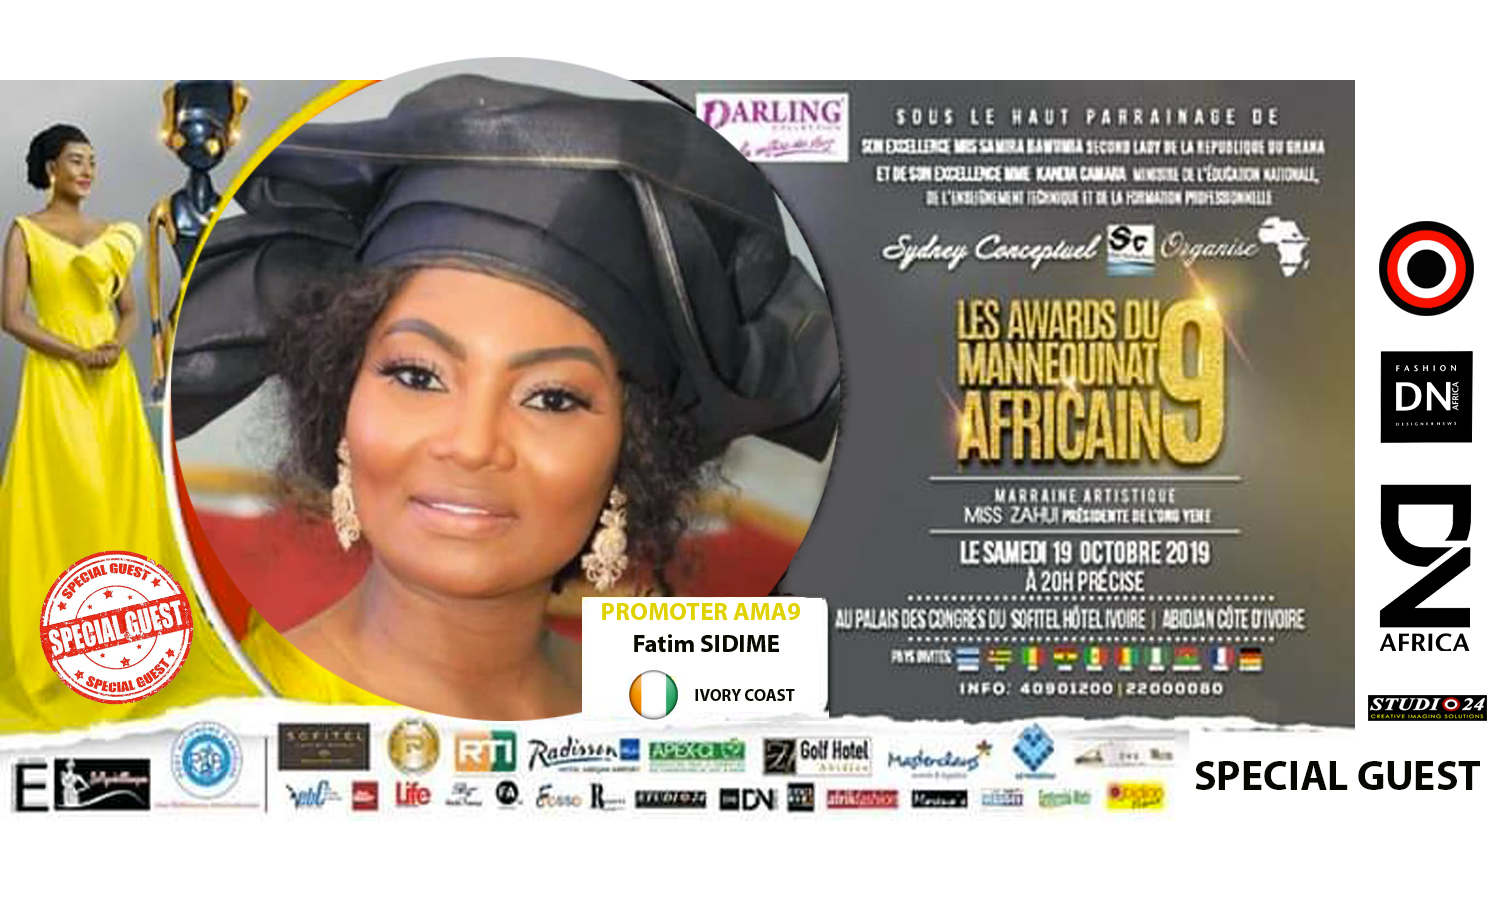 AFRICAN FASHION STYLE MAGAZINE - AMA 9 by Fatim SIDIME - LES-AWARDS-DU-MANNEQUINNAT-AFRICAIN-EDITION-9-2019 - Event organiser Sydney conceptuel - Special Guest Her excellence Ms. Samira Bawumi, Ghana's Vice President - Photographer DAN NGU - Official Media Partner DN AFRICA - STUDIO 24 NIGERIA - STUDIO 24 INTERNATIONAL - Ifeanyi Christopher Oputa MD AND CEO OF COLVI LIMITED AND STUDIO 24 - CHEVEUX CHERIE and CHEVEUX CHERIE STUDIO BY MARIEME DUBOZ- Fashion Editor Nahomie NOOR COULIBALY